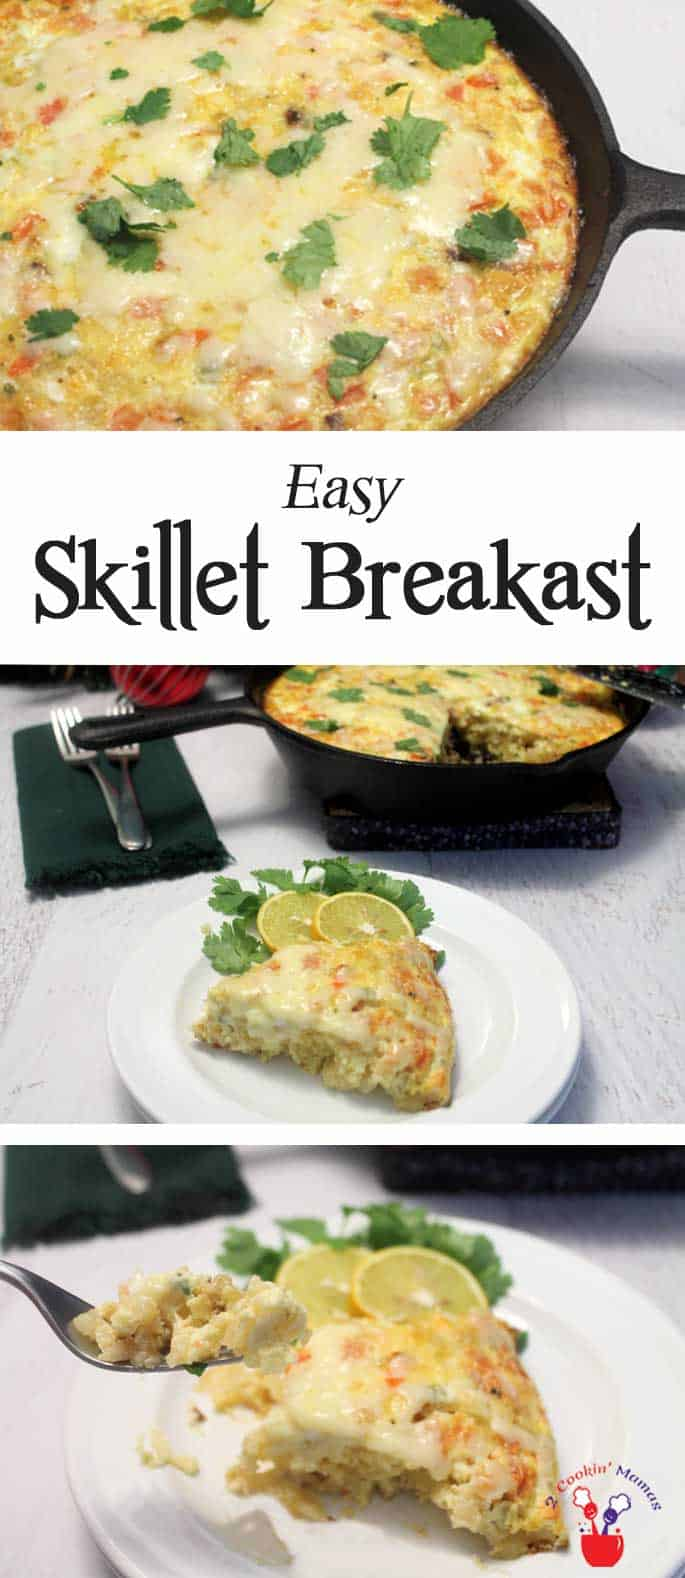 Make an easy breakfast skillet with only 6 ingredients & one pan! Mix bacon, eggs, hash browns, salsa & cheese then bake - yum! #breakfast #eggs #recipe #bacon #hashbrowns